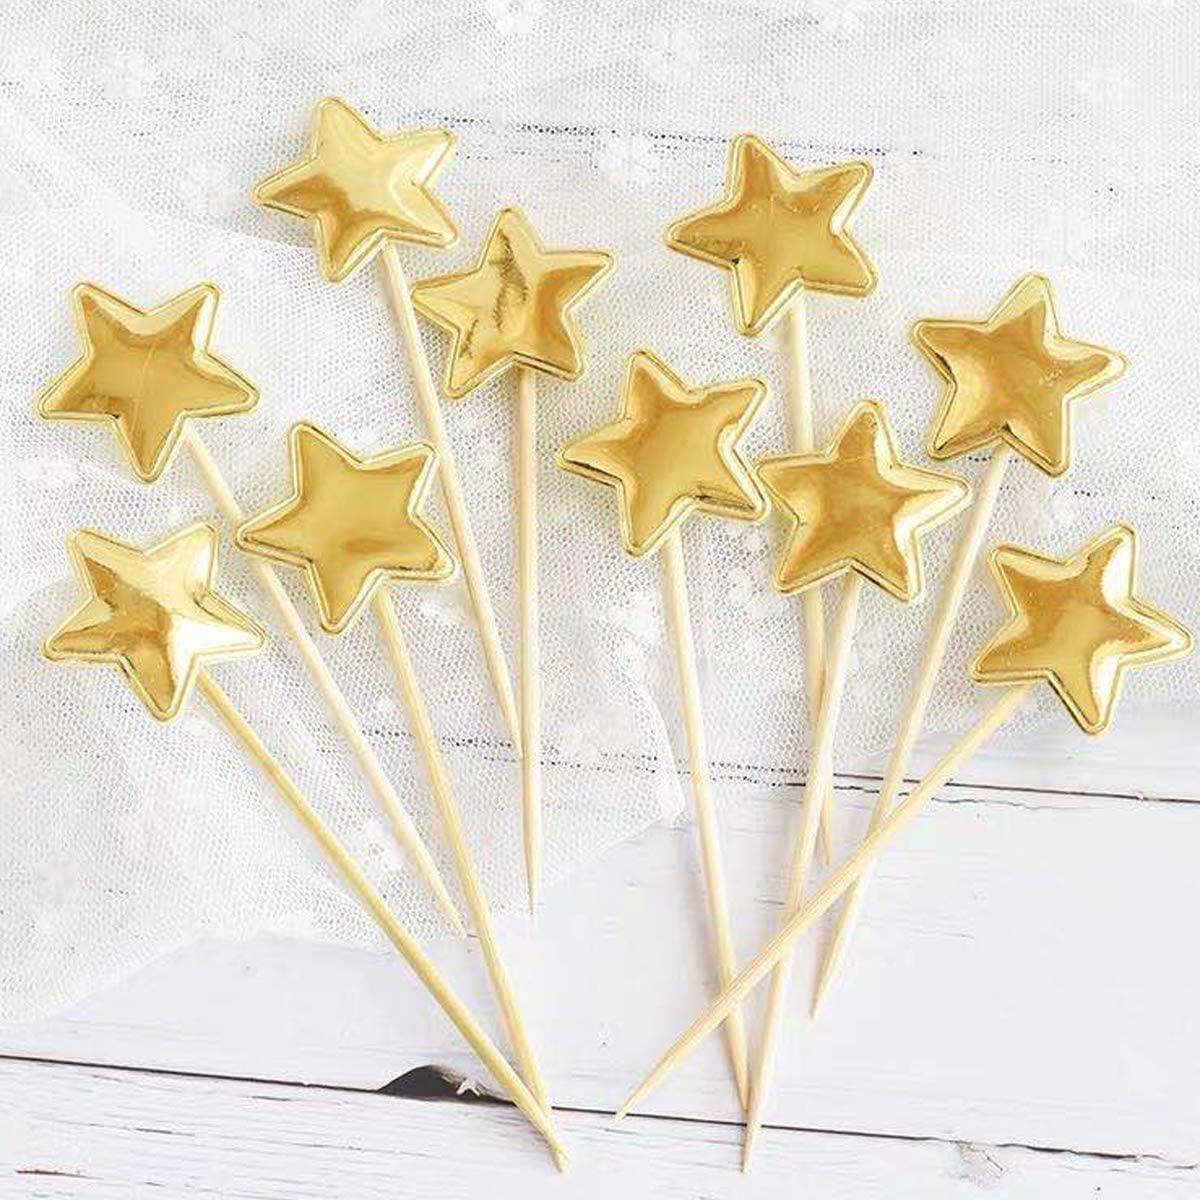 Cake Candles Toppers Confetti Balloon Stars Happy Birthday Cupcake Topper Letters and Fan Cupcake Toppers Sliver Fantasyon 24 Pcs Happy Birthday Cake Toppers Set